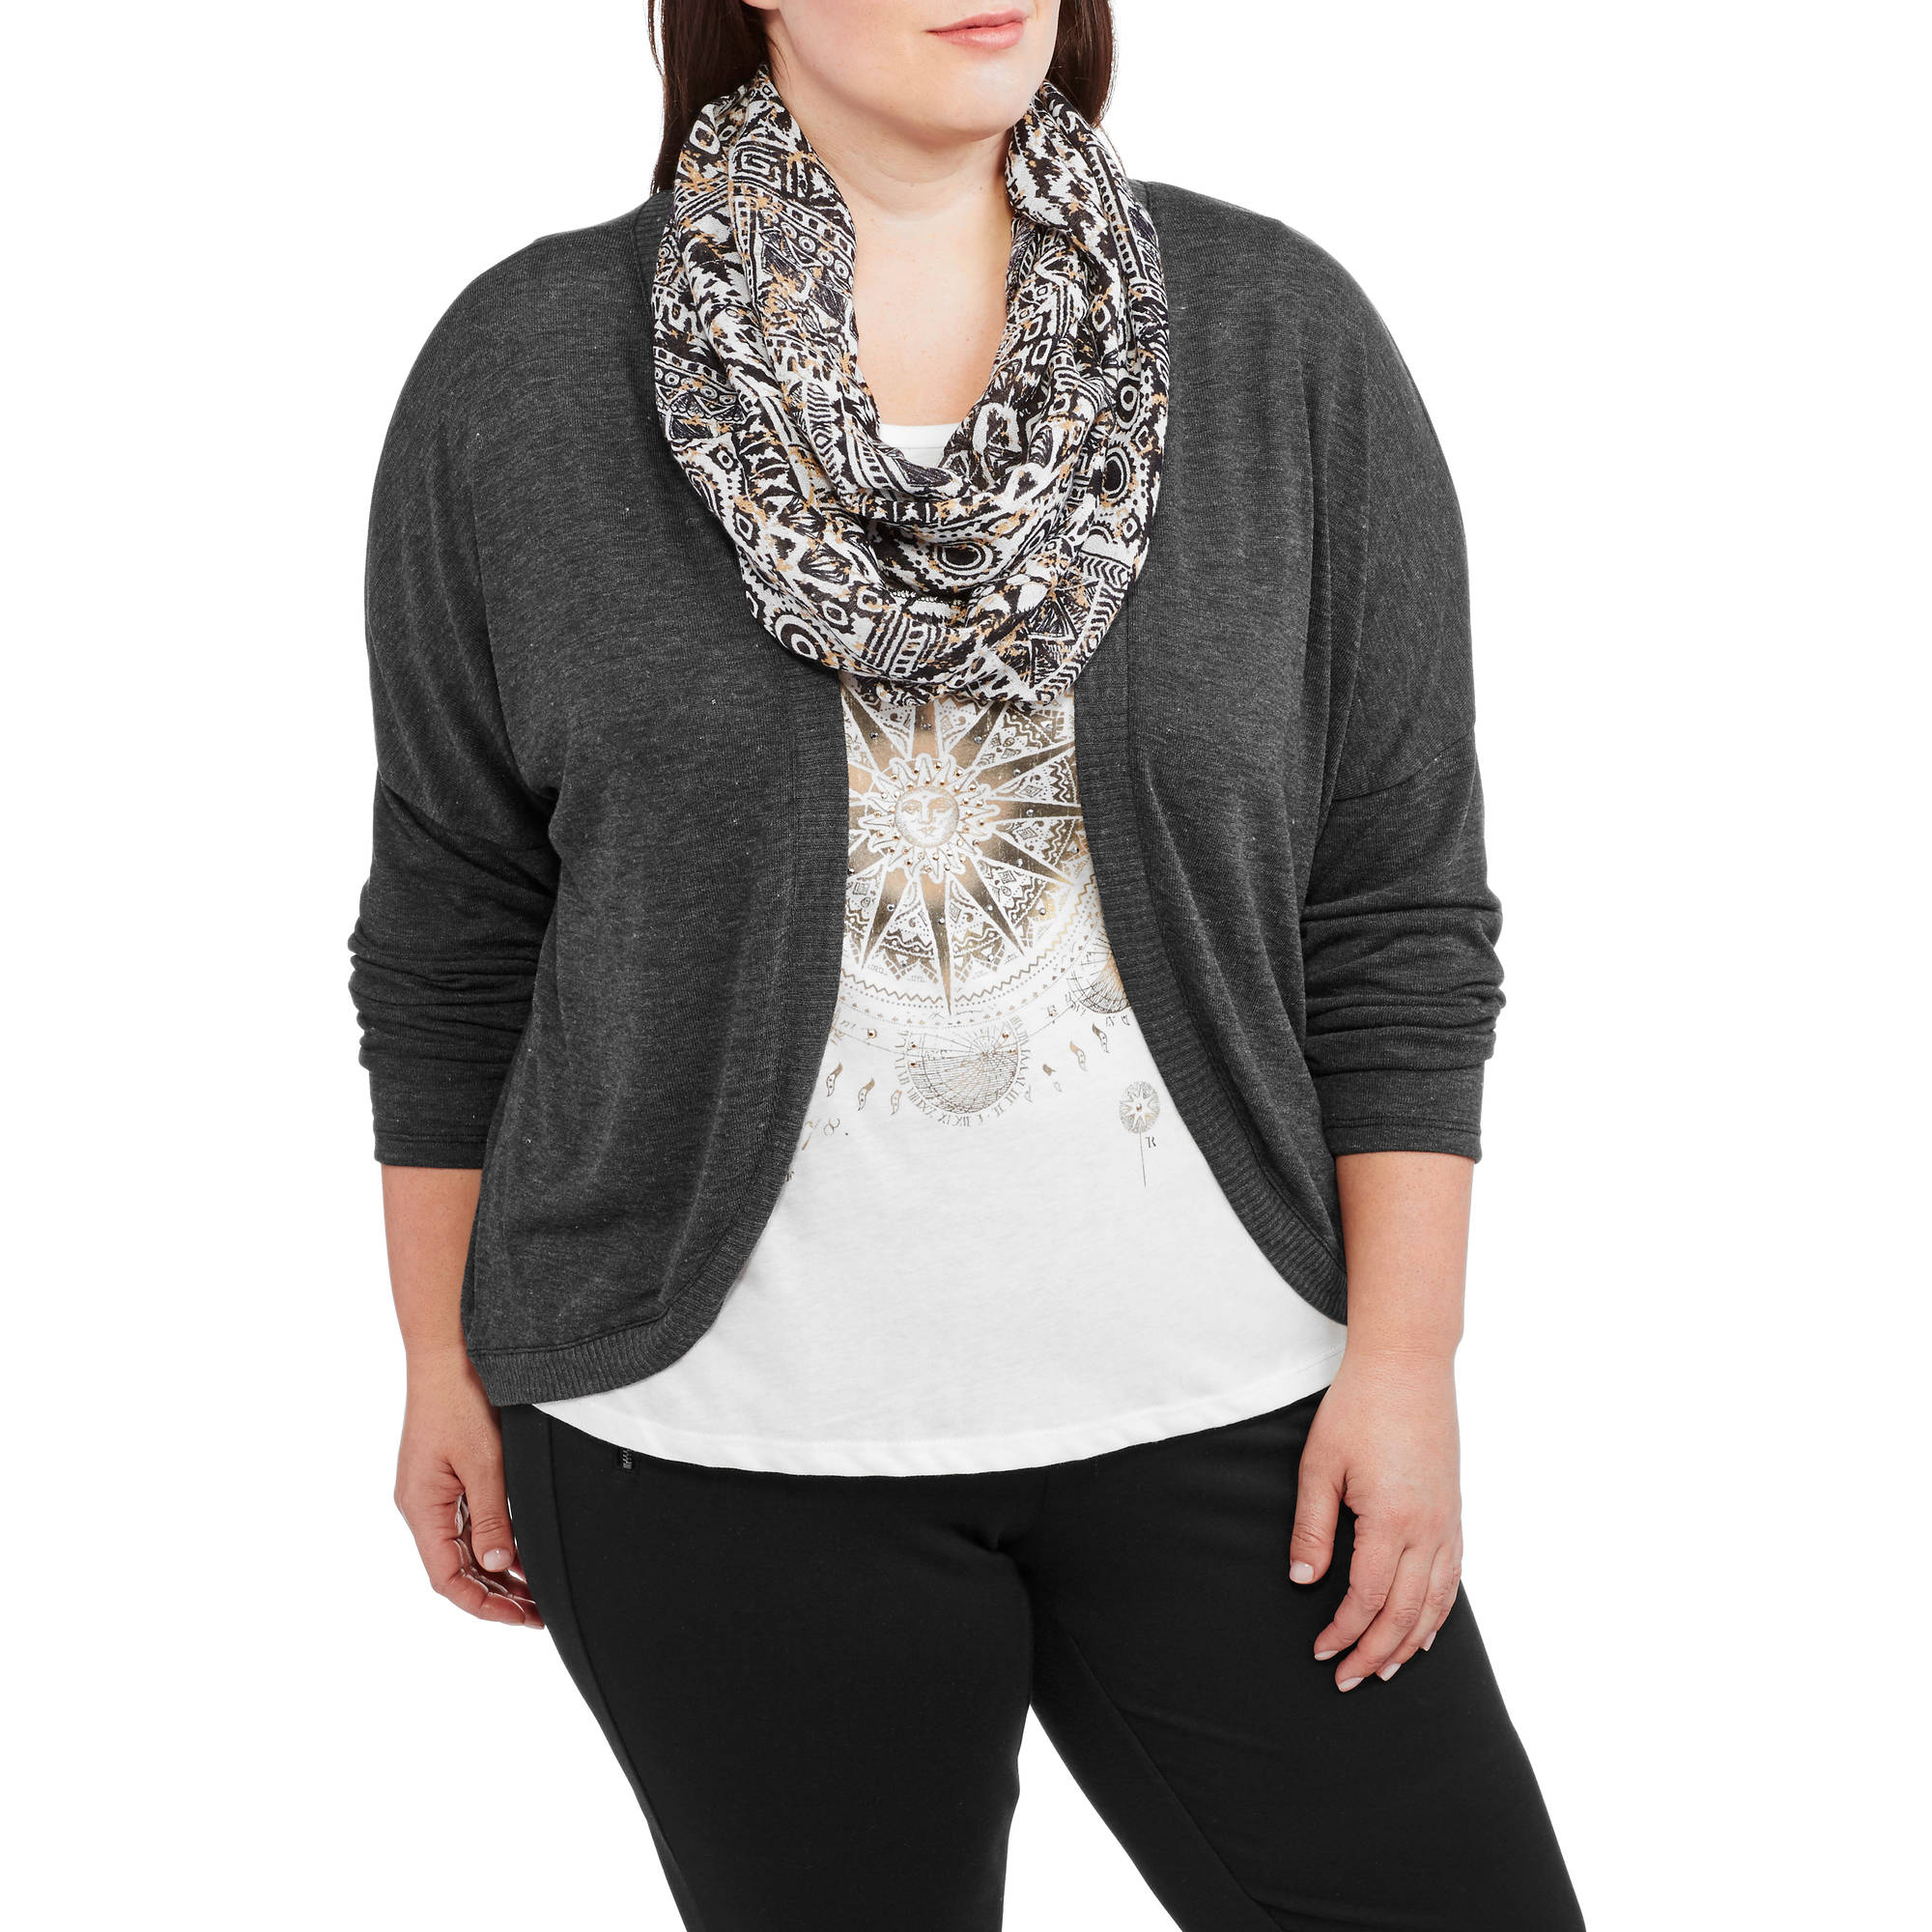 Tru Self Women's Plus-Size Graphic Tee 3Fer (Includes Tee, Cardigan, Scarf)